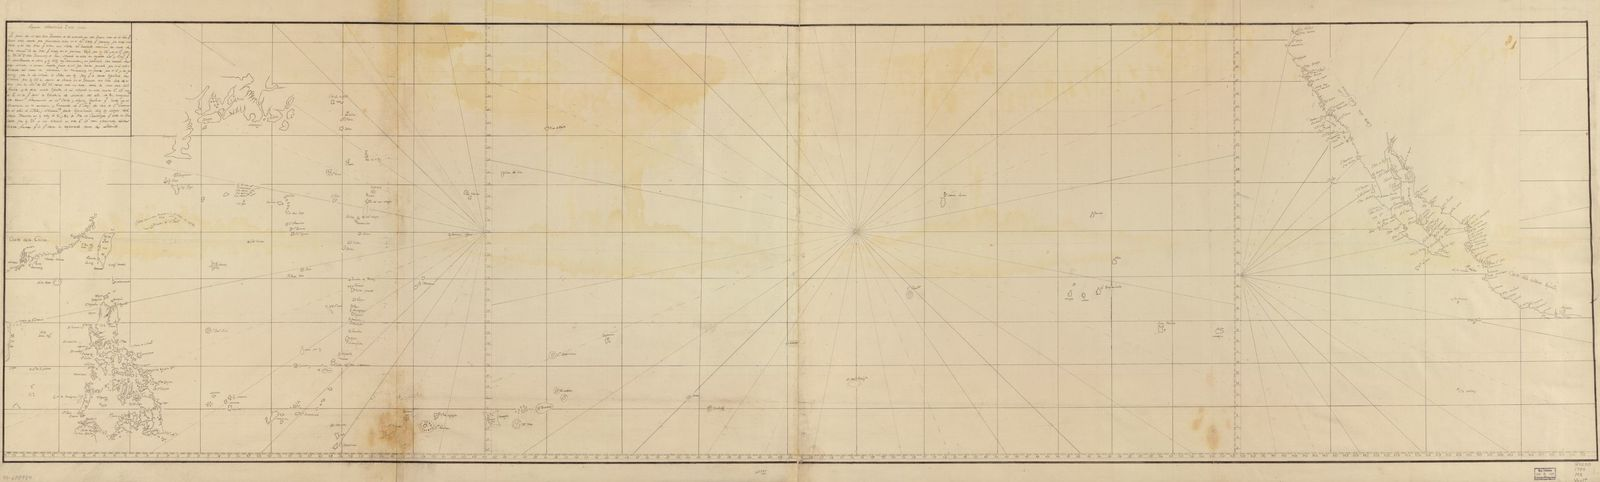 [Map of Pacific Ocean between the coast of California and Mexico and Japan, Philippines, and the coast of China].